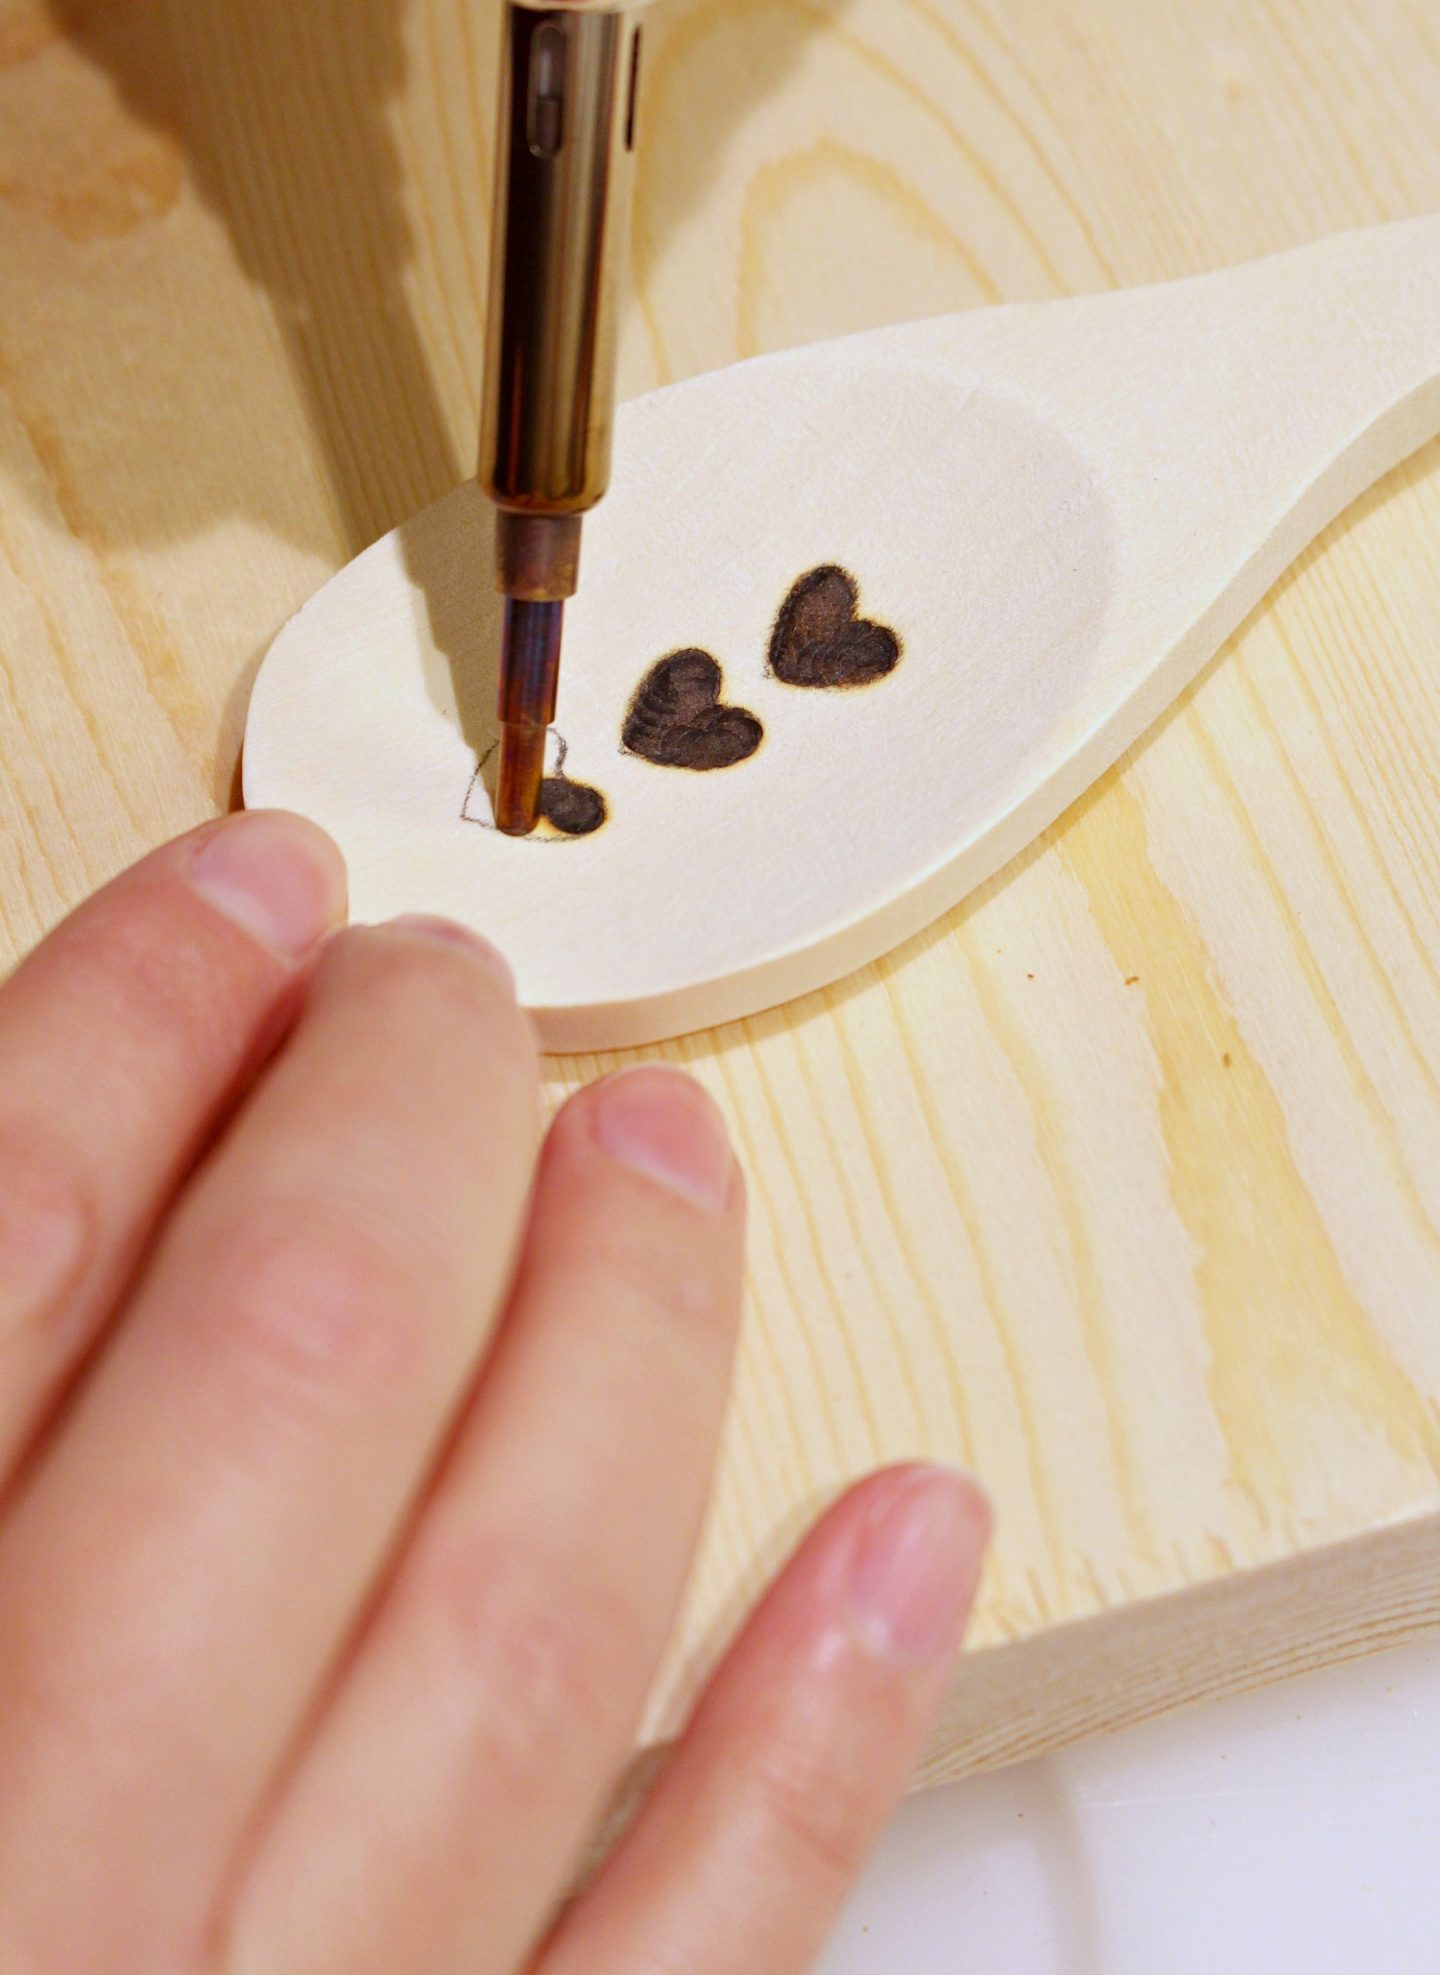 DIY Wood Burned Spoon Tutorial